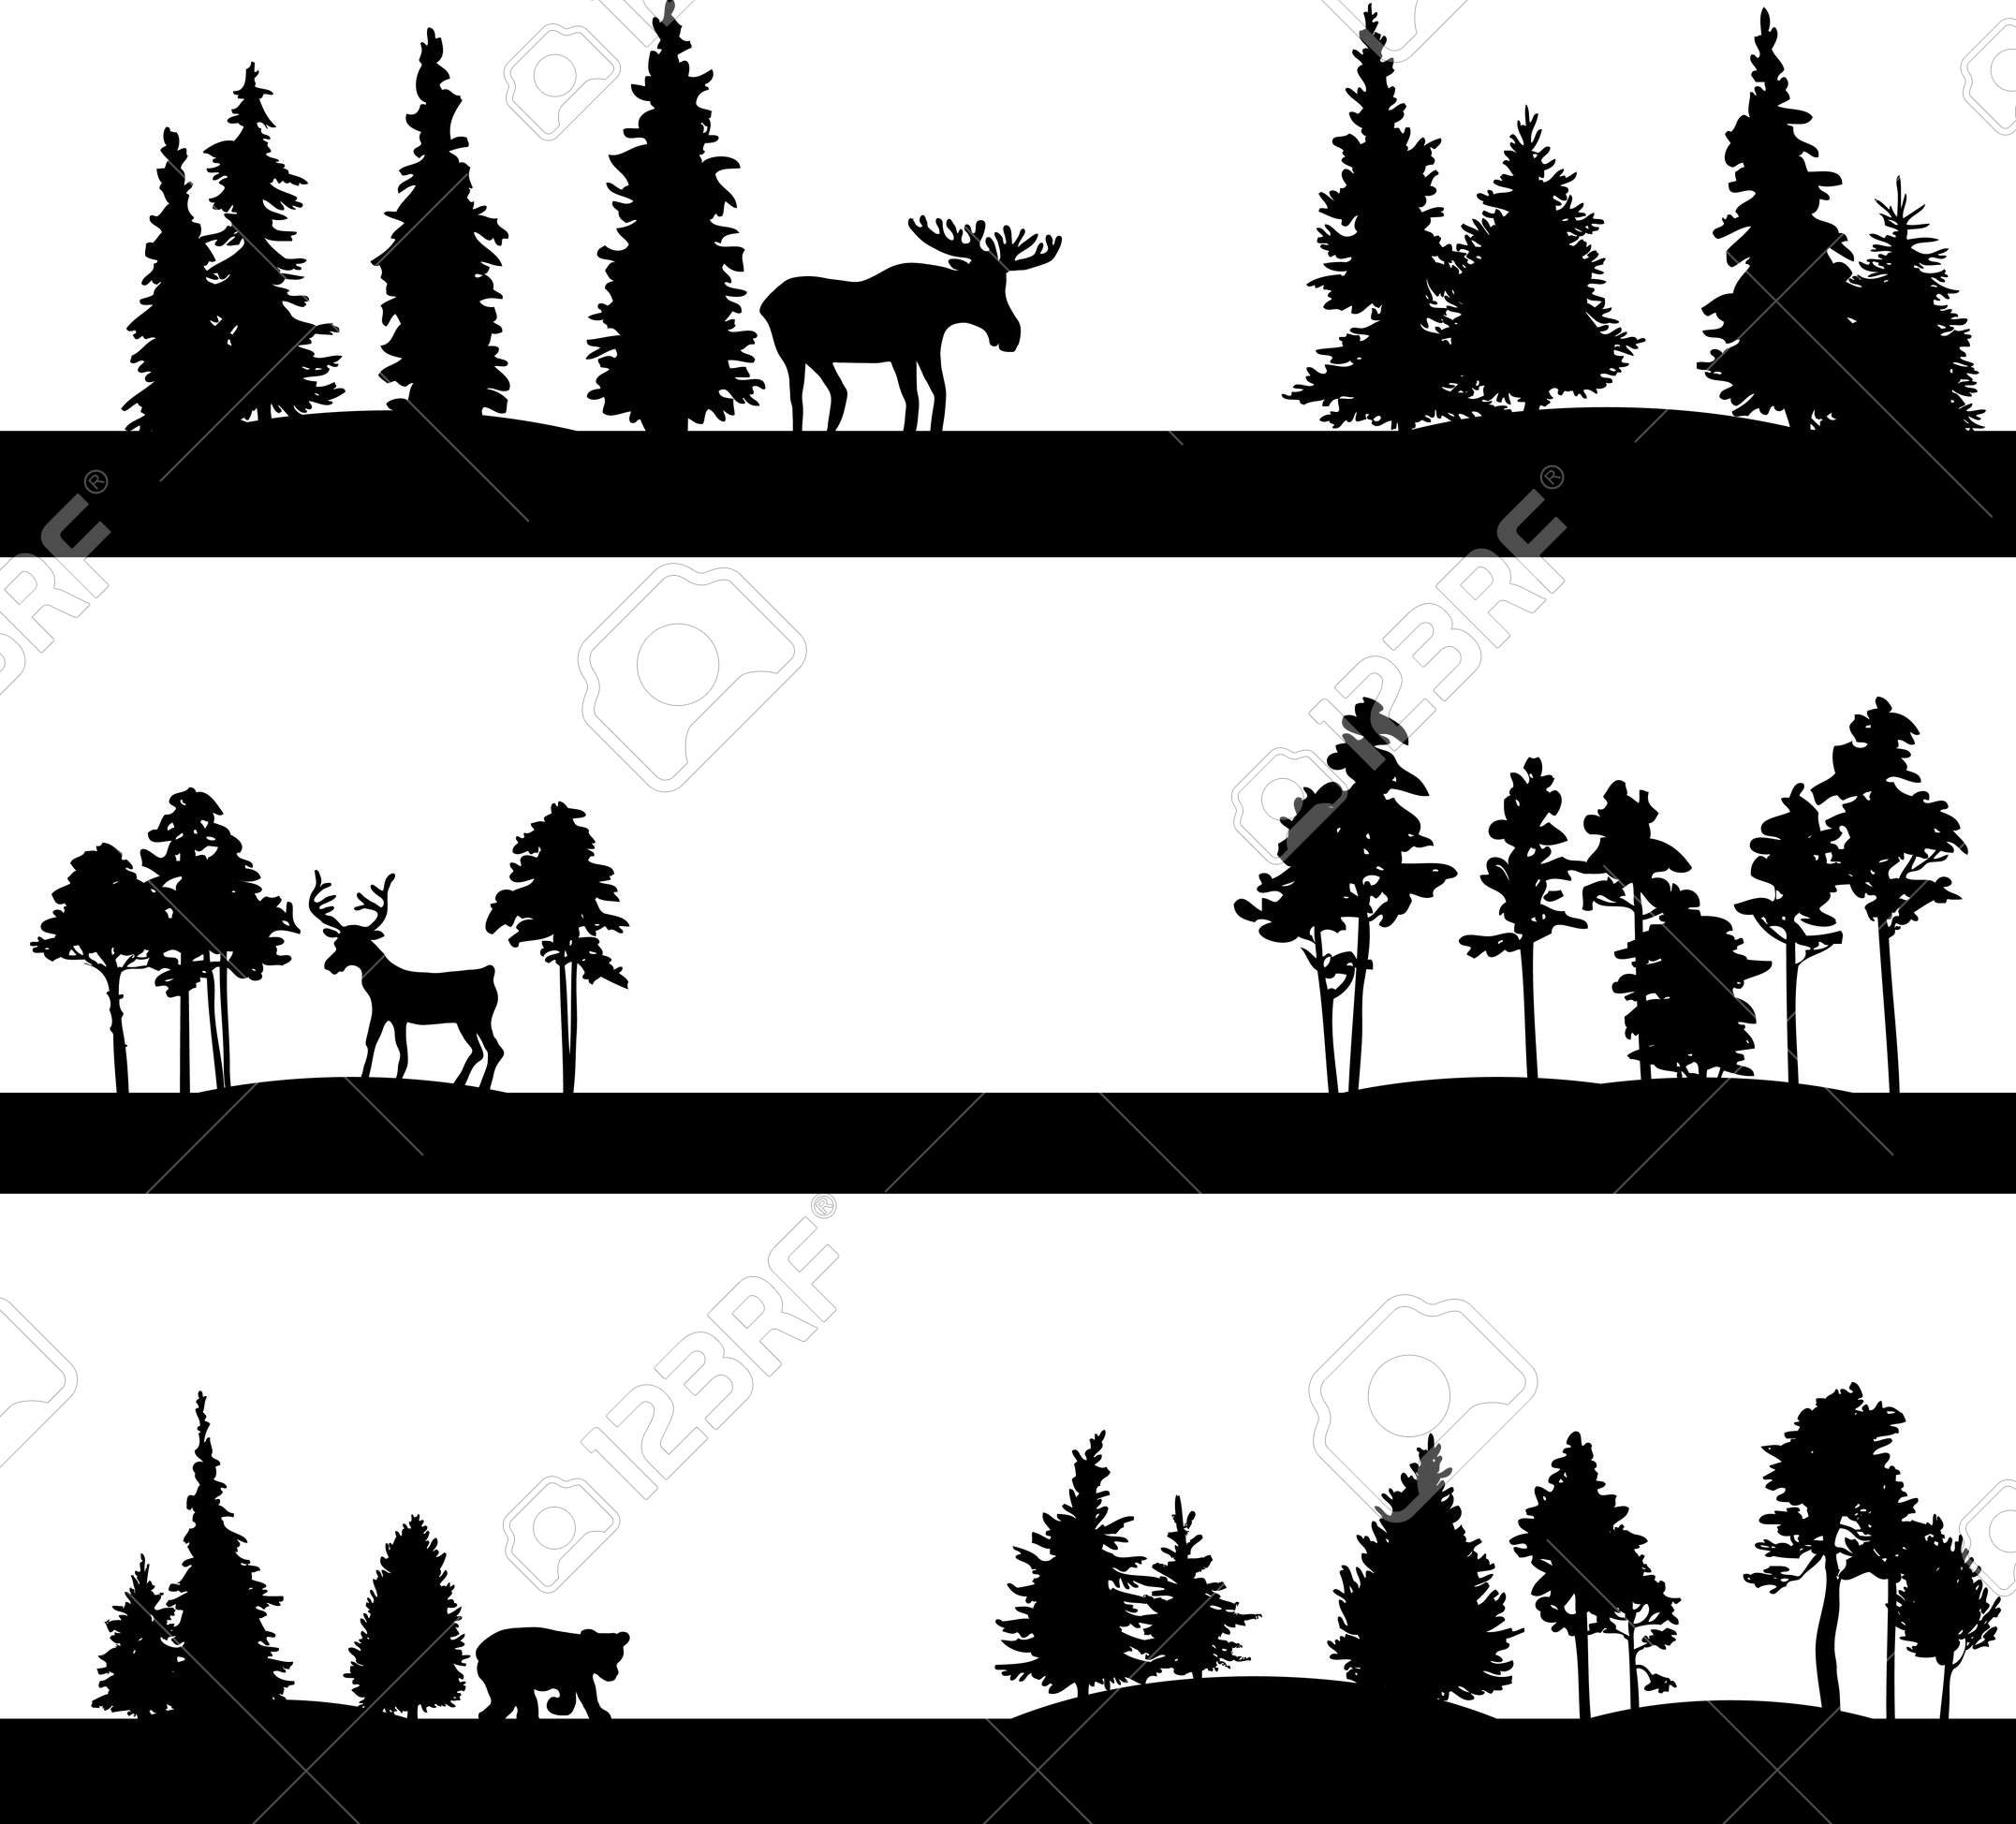 2153x1948 Set Of Different Landscapes With Coniferous Trees And Wild Animals